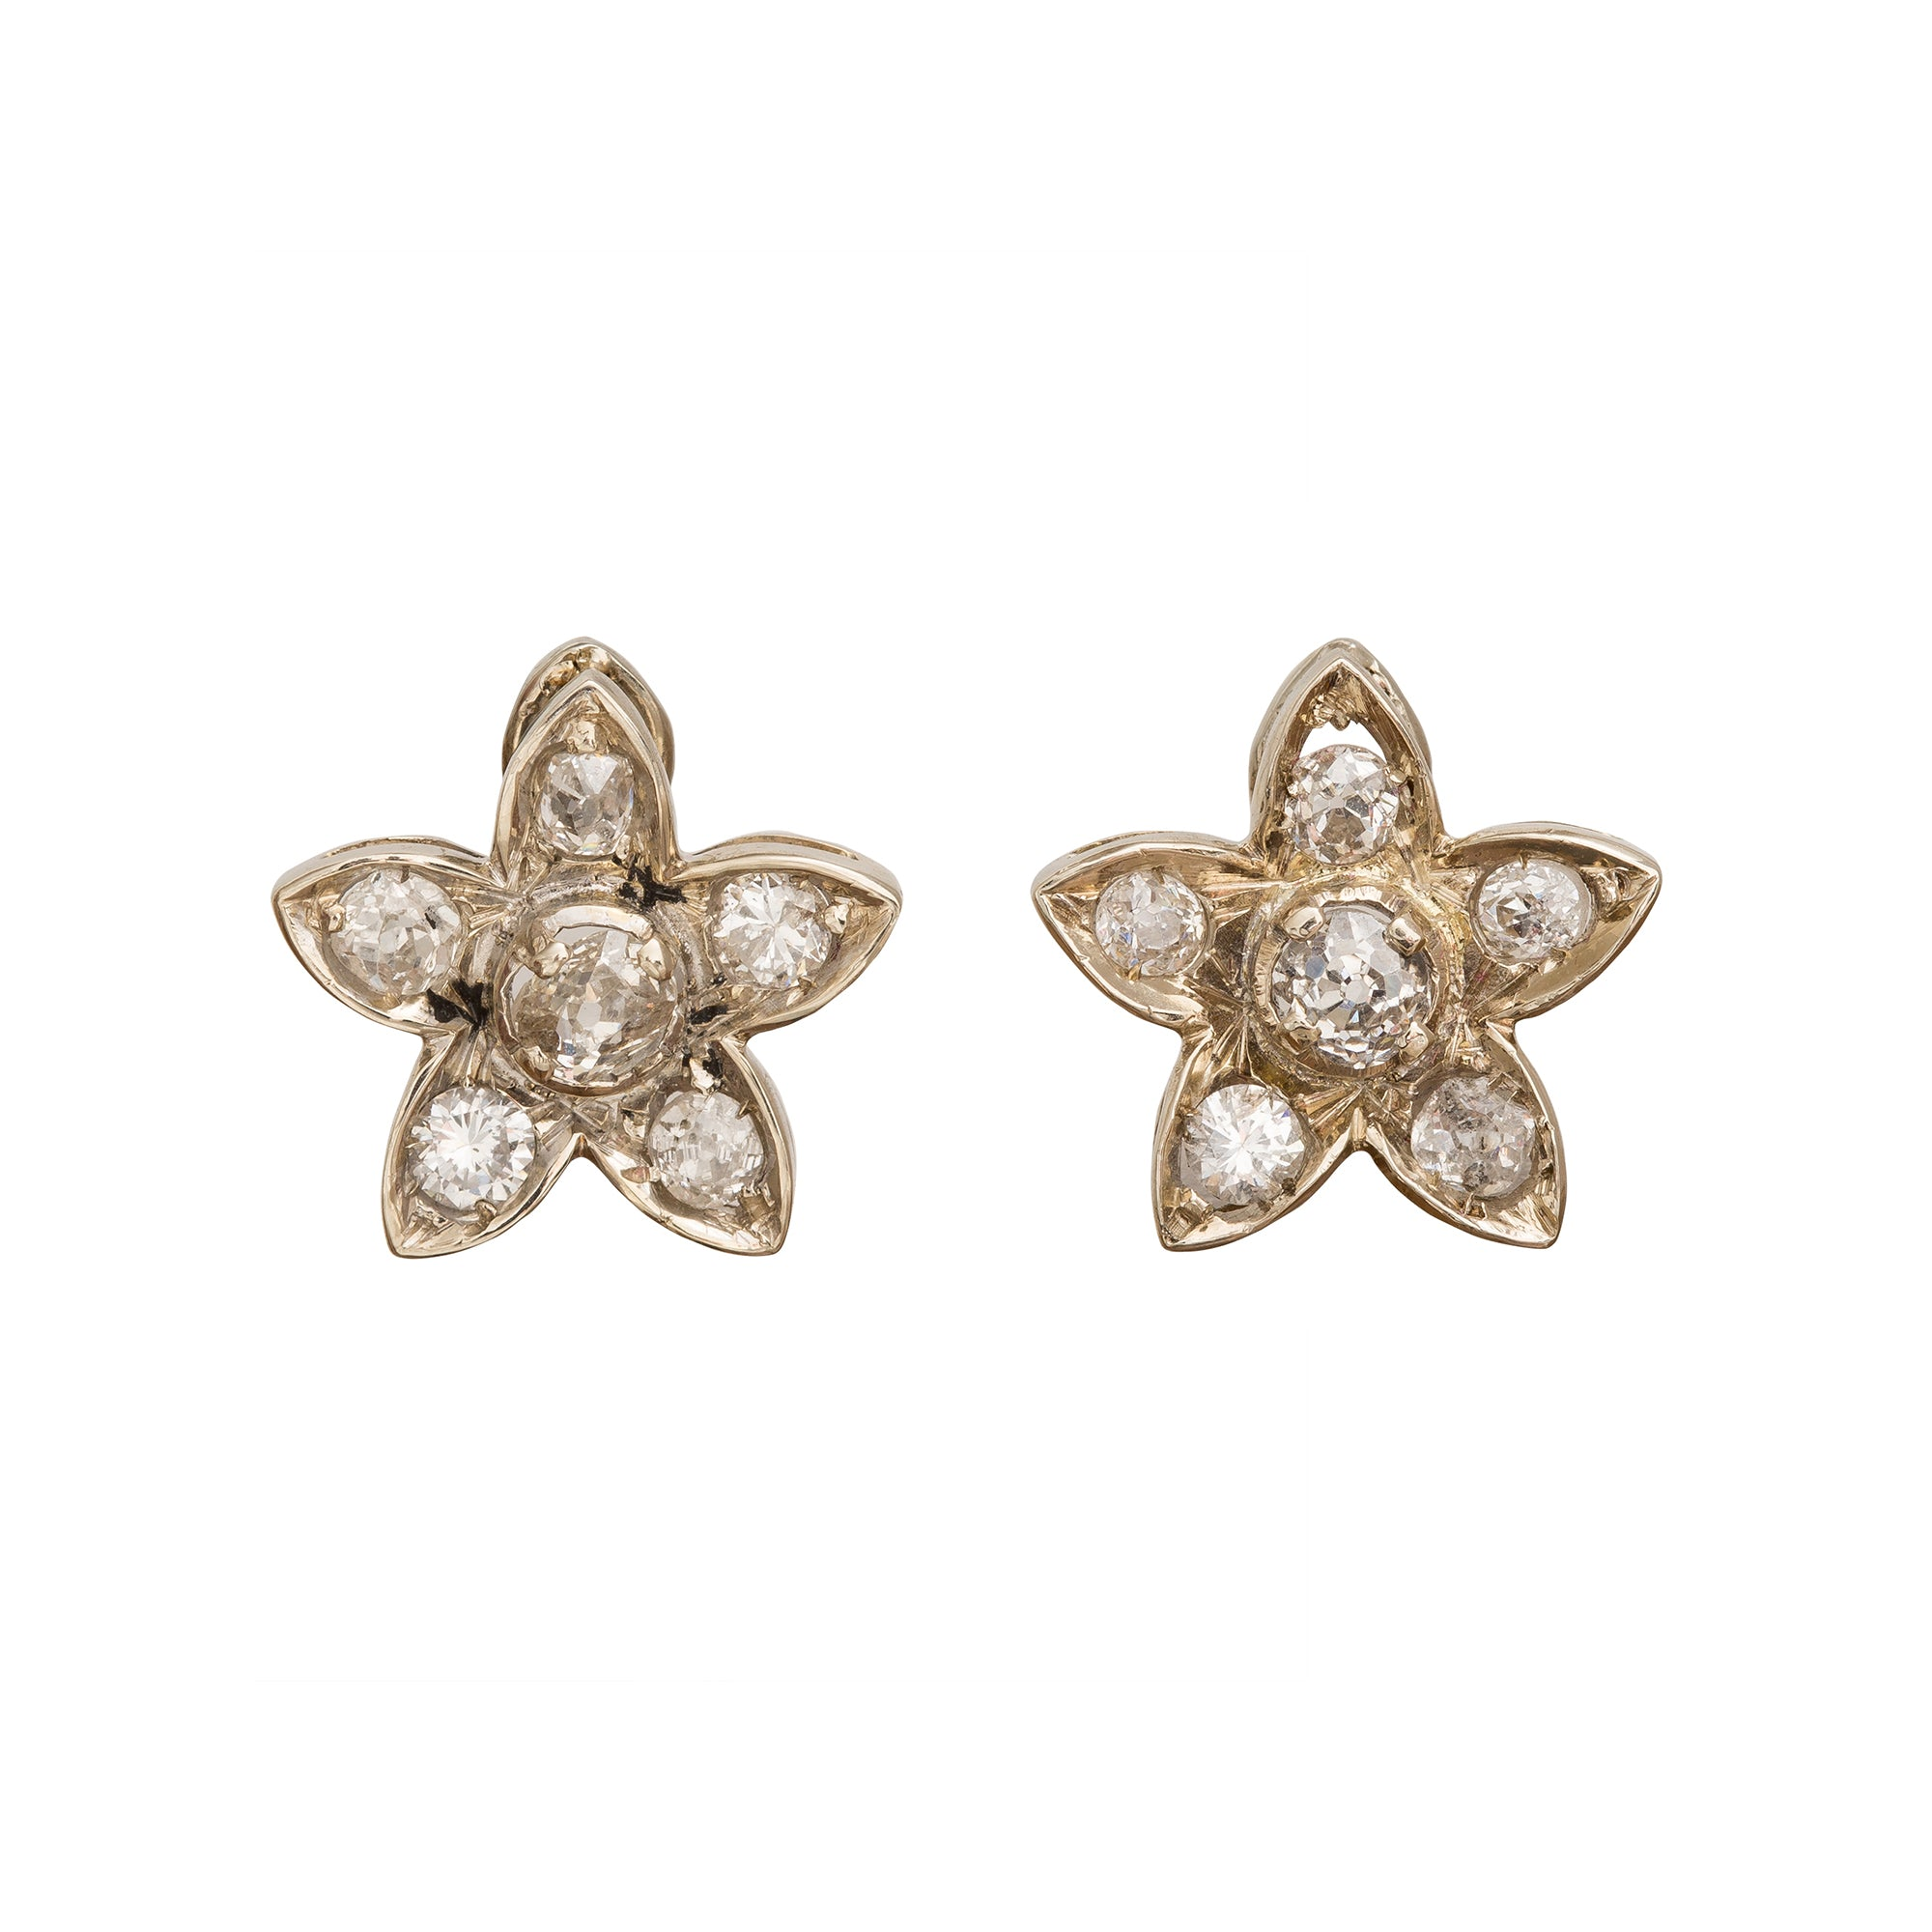 Diamond Star Earrings by Vintage Jewelry for Broken English Jewelry